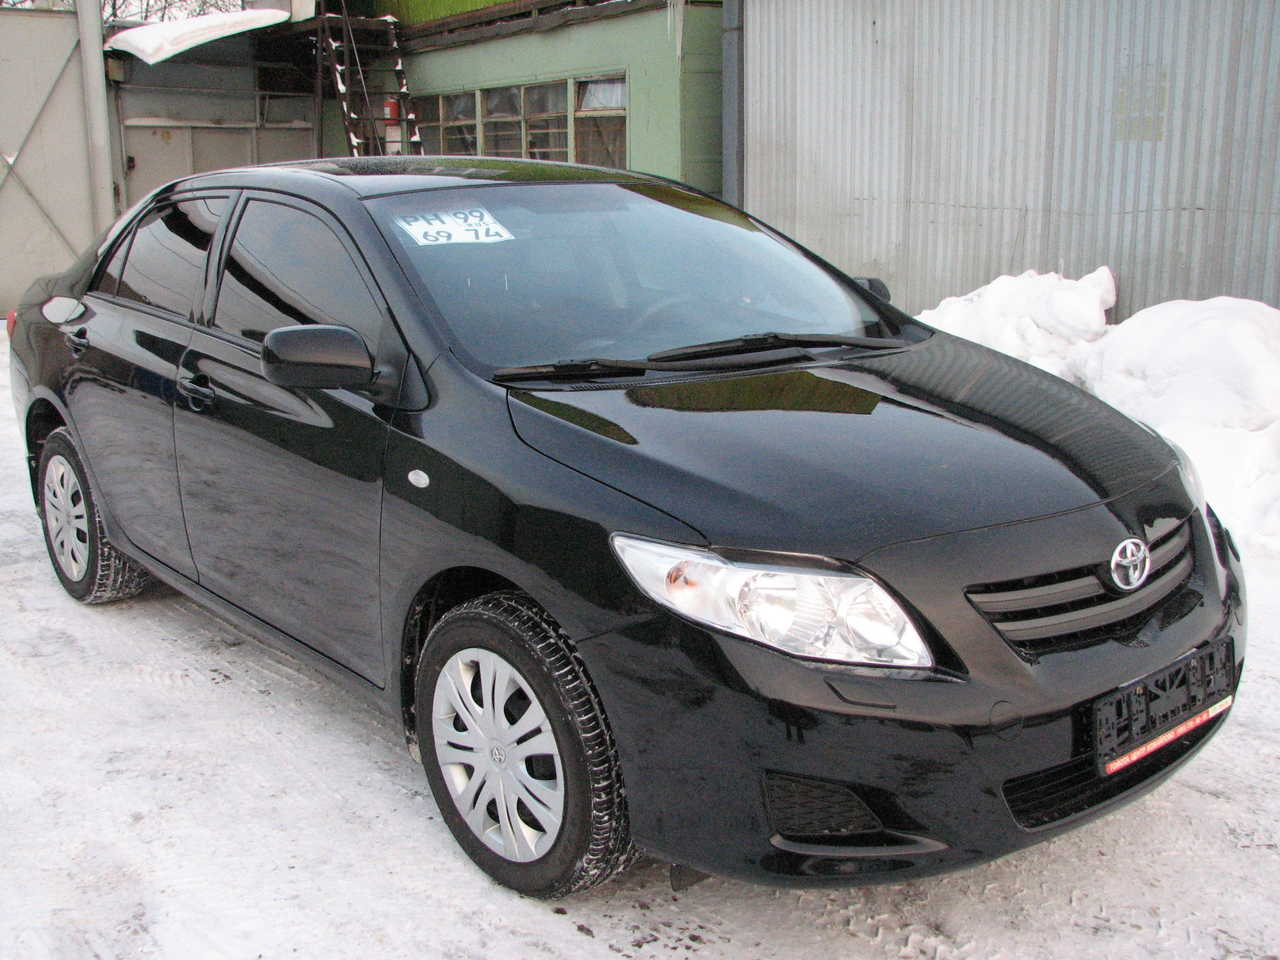 used 2009 toyota corolla photos 1598cc gasoline ff manual for sale. Black Bedroom Furniture Sets. Home Design Ideas